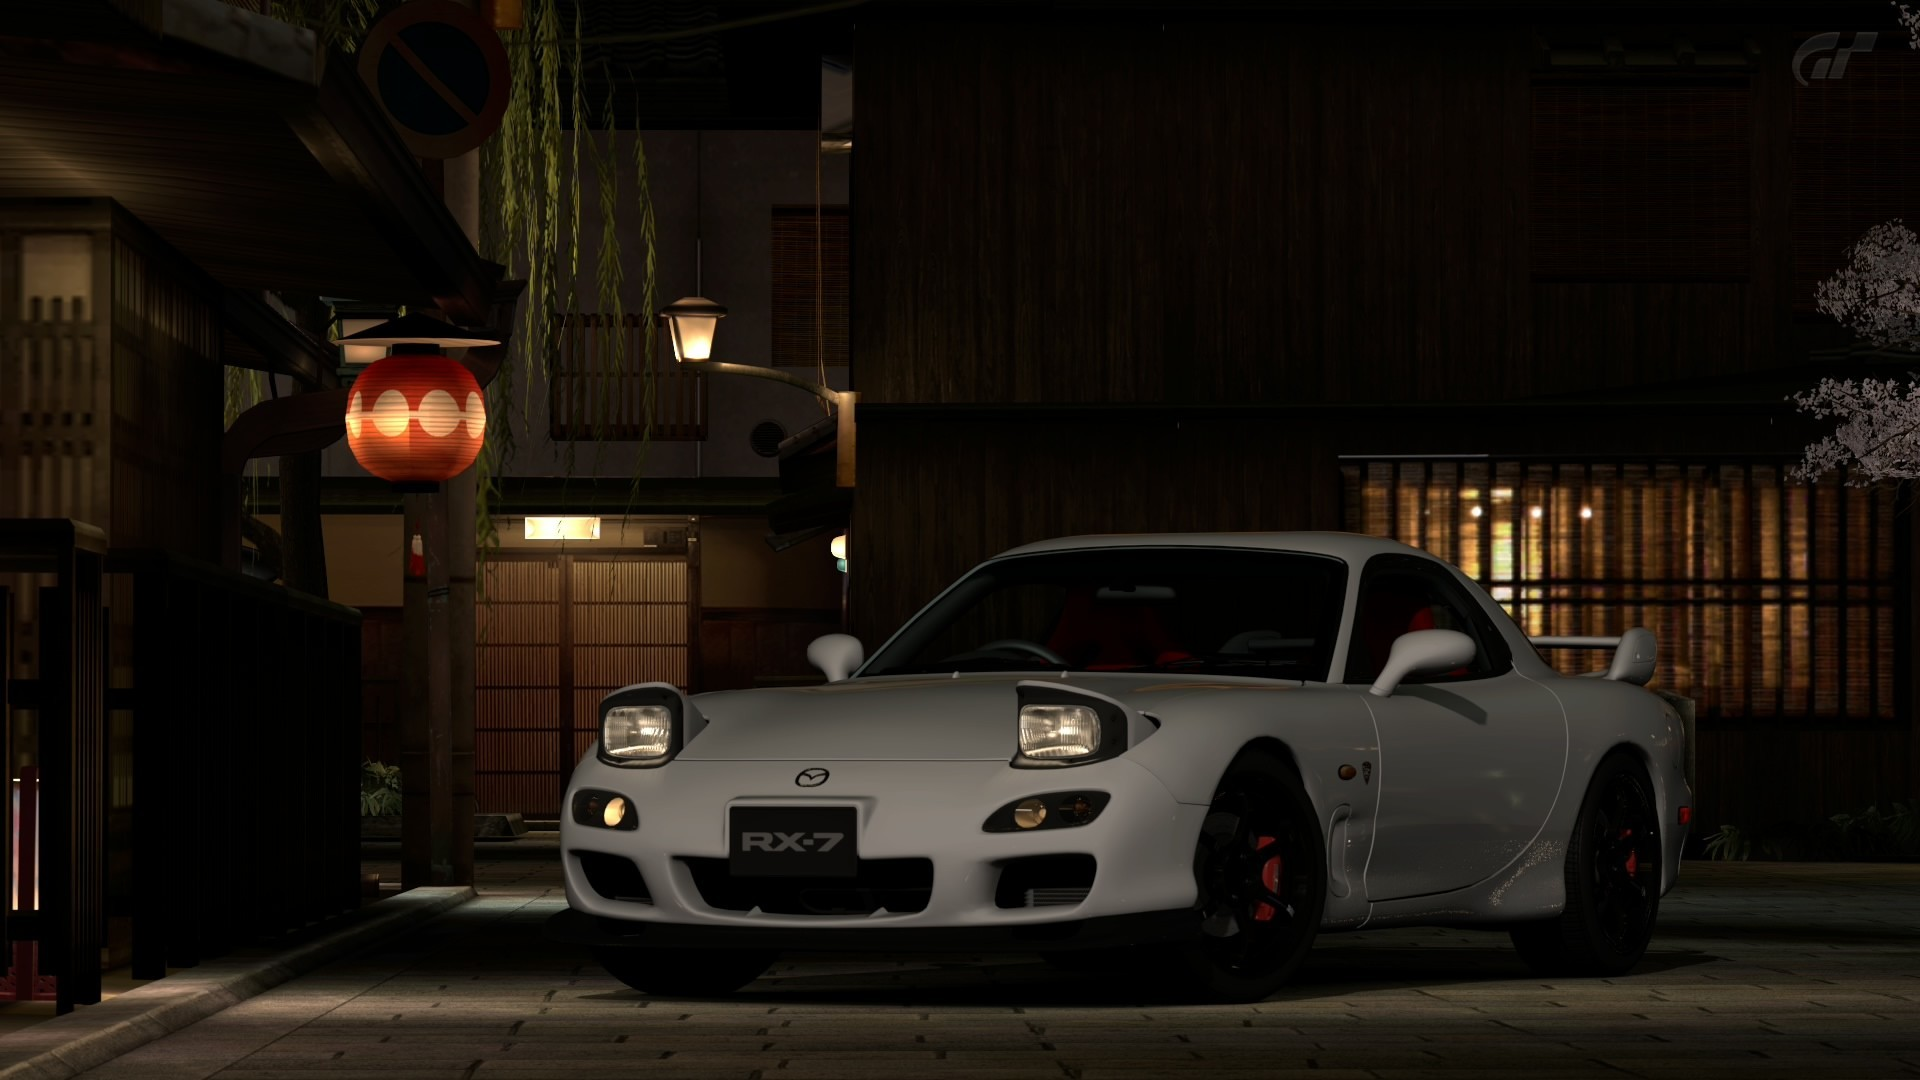 Rx8 Iphone Wallpaper Mazda Rx 7 Gran Turismo 5 Playstation 3 Wallpaper